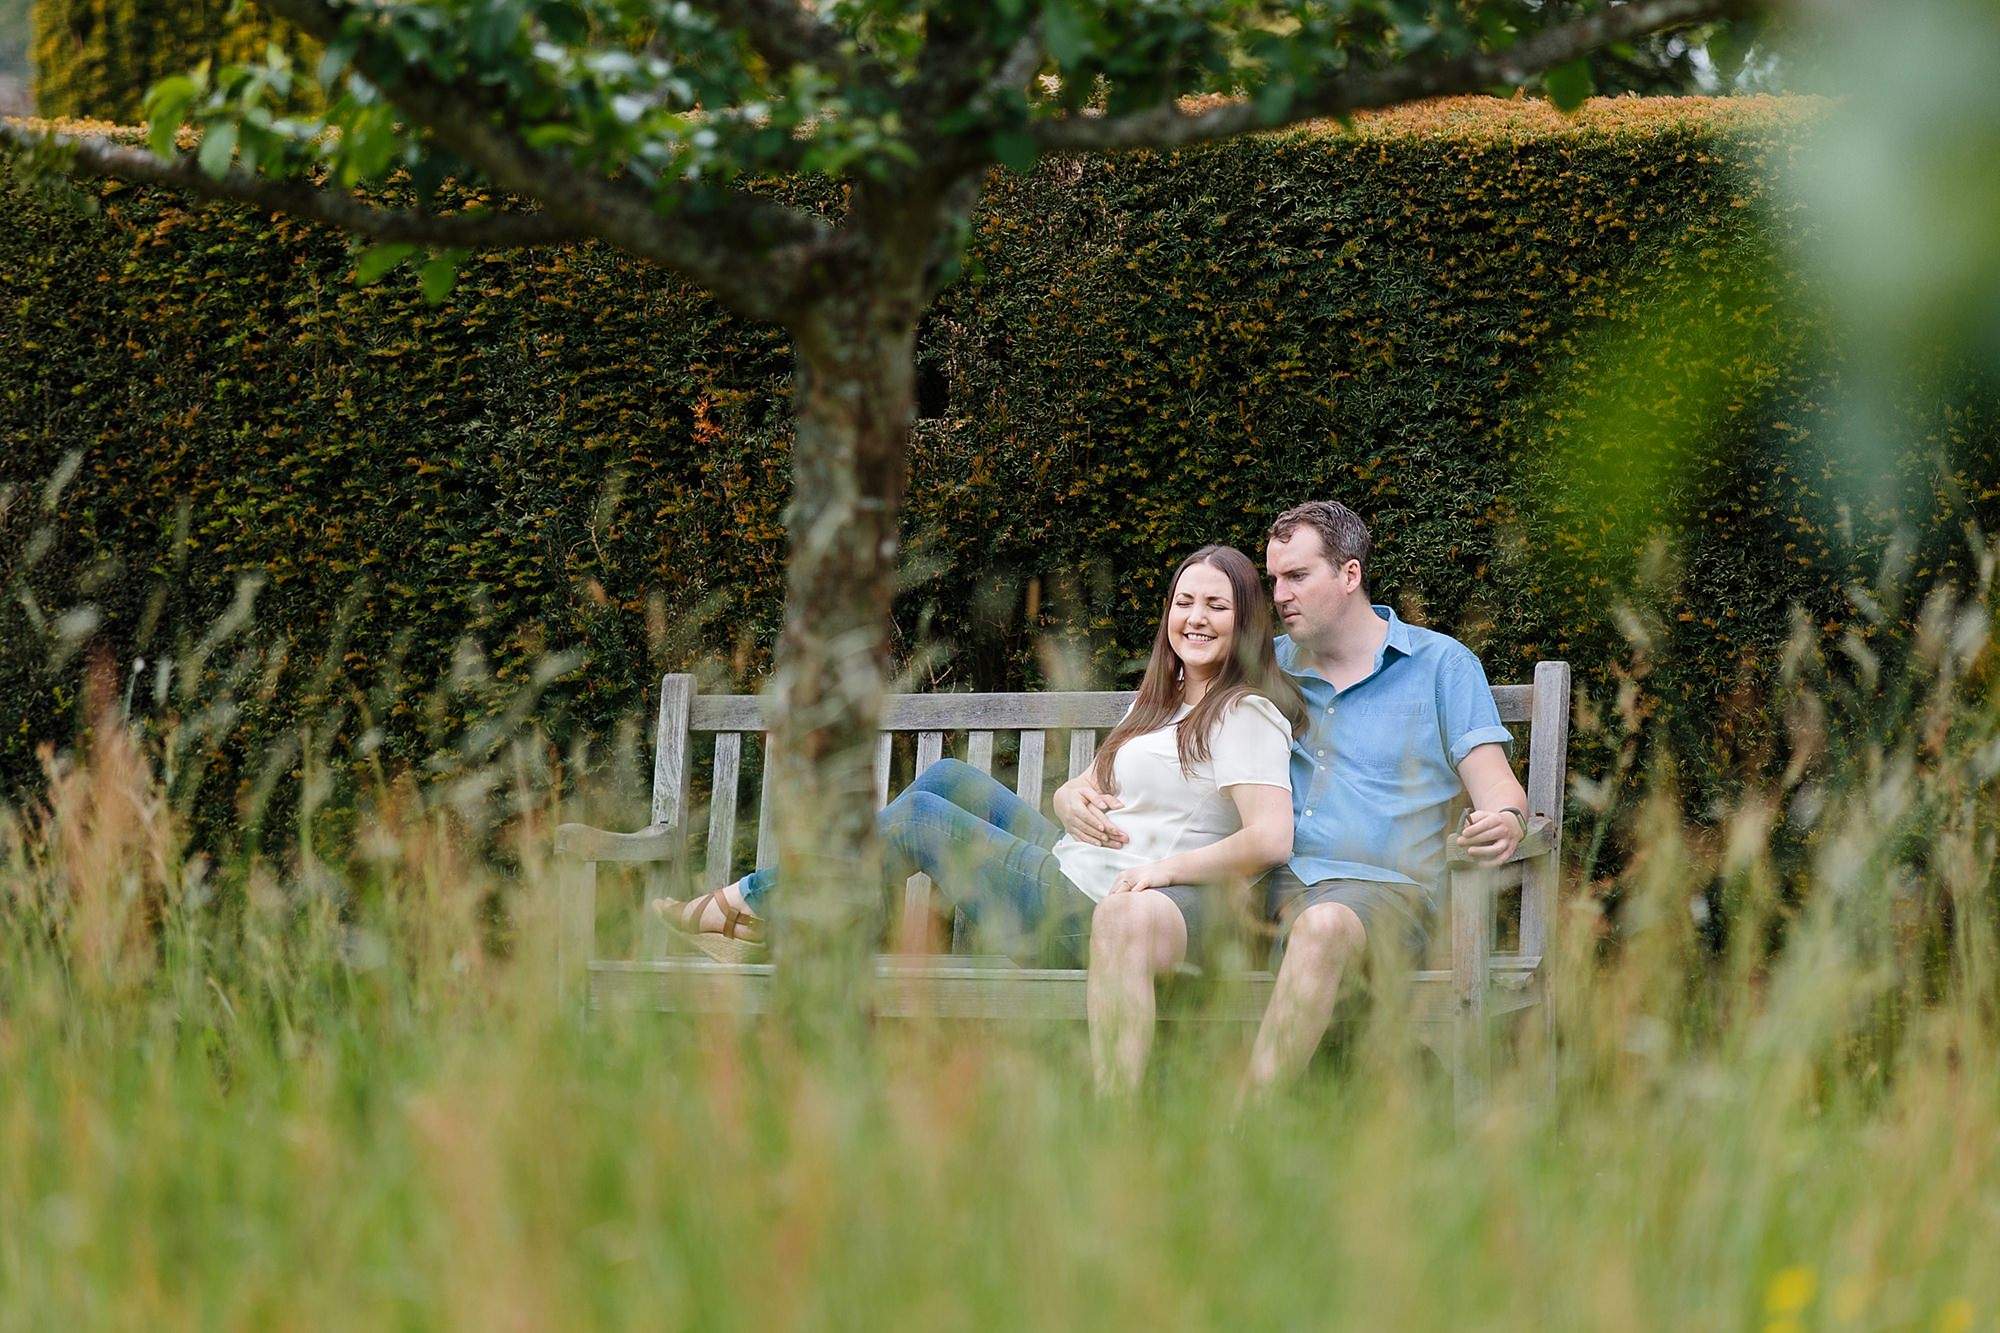 Tonbridge engagement photography - a couple laughs together on a bench